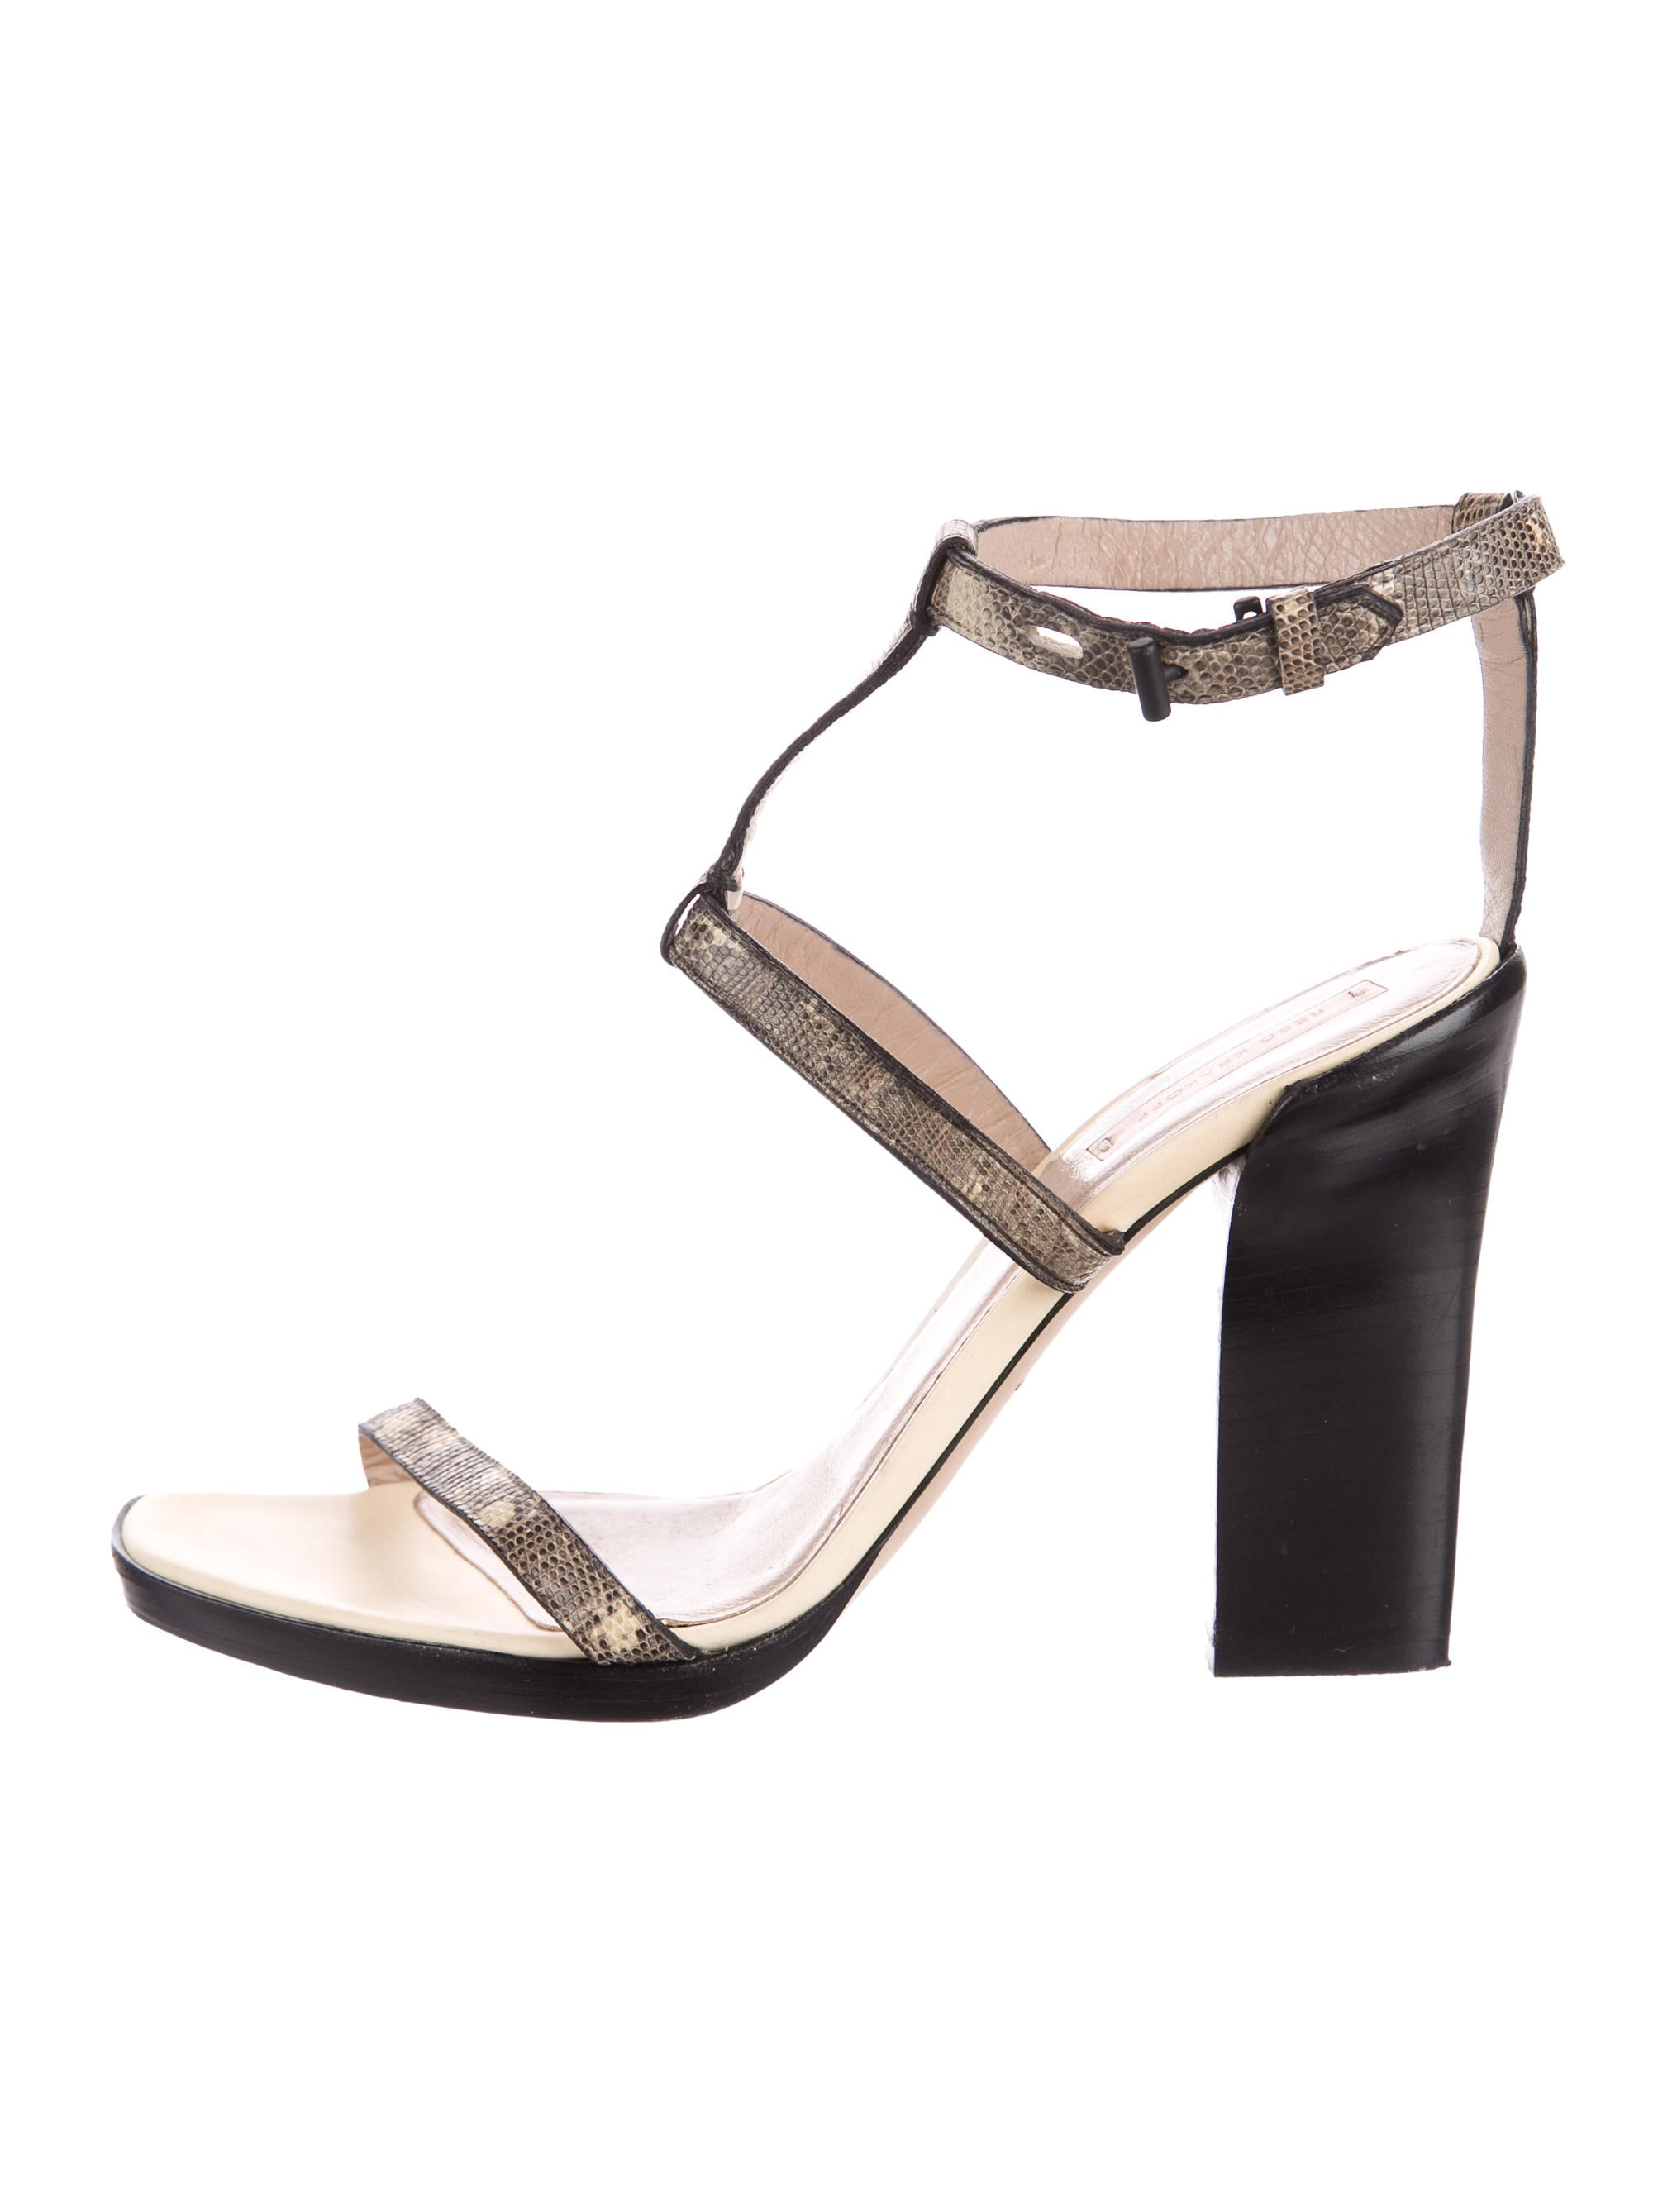 clearance finishline Reed Krakoff Embossed Ankle Strap Sandals outlet pick a best great deals cheap online amazing price online outlet ynlAGkR